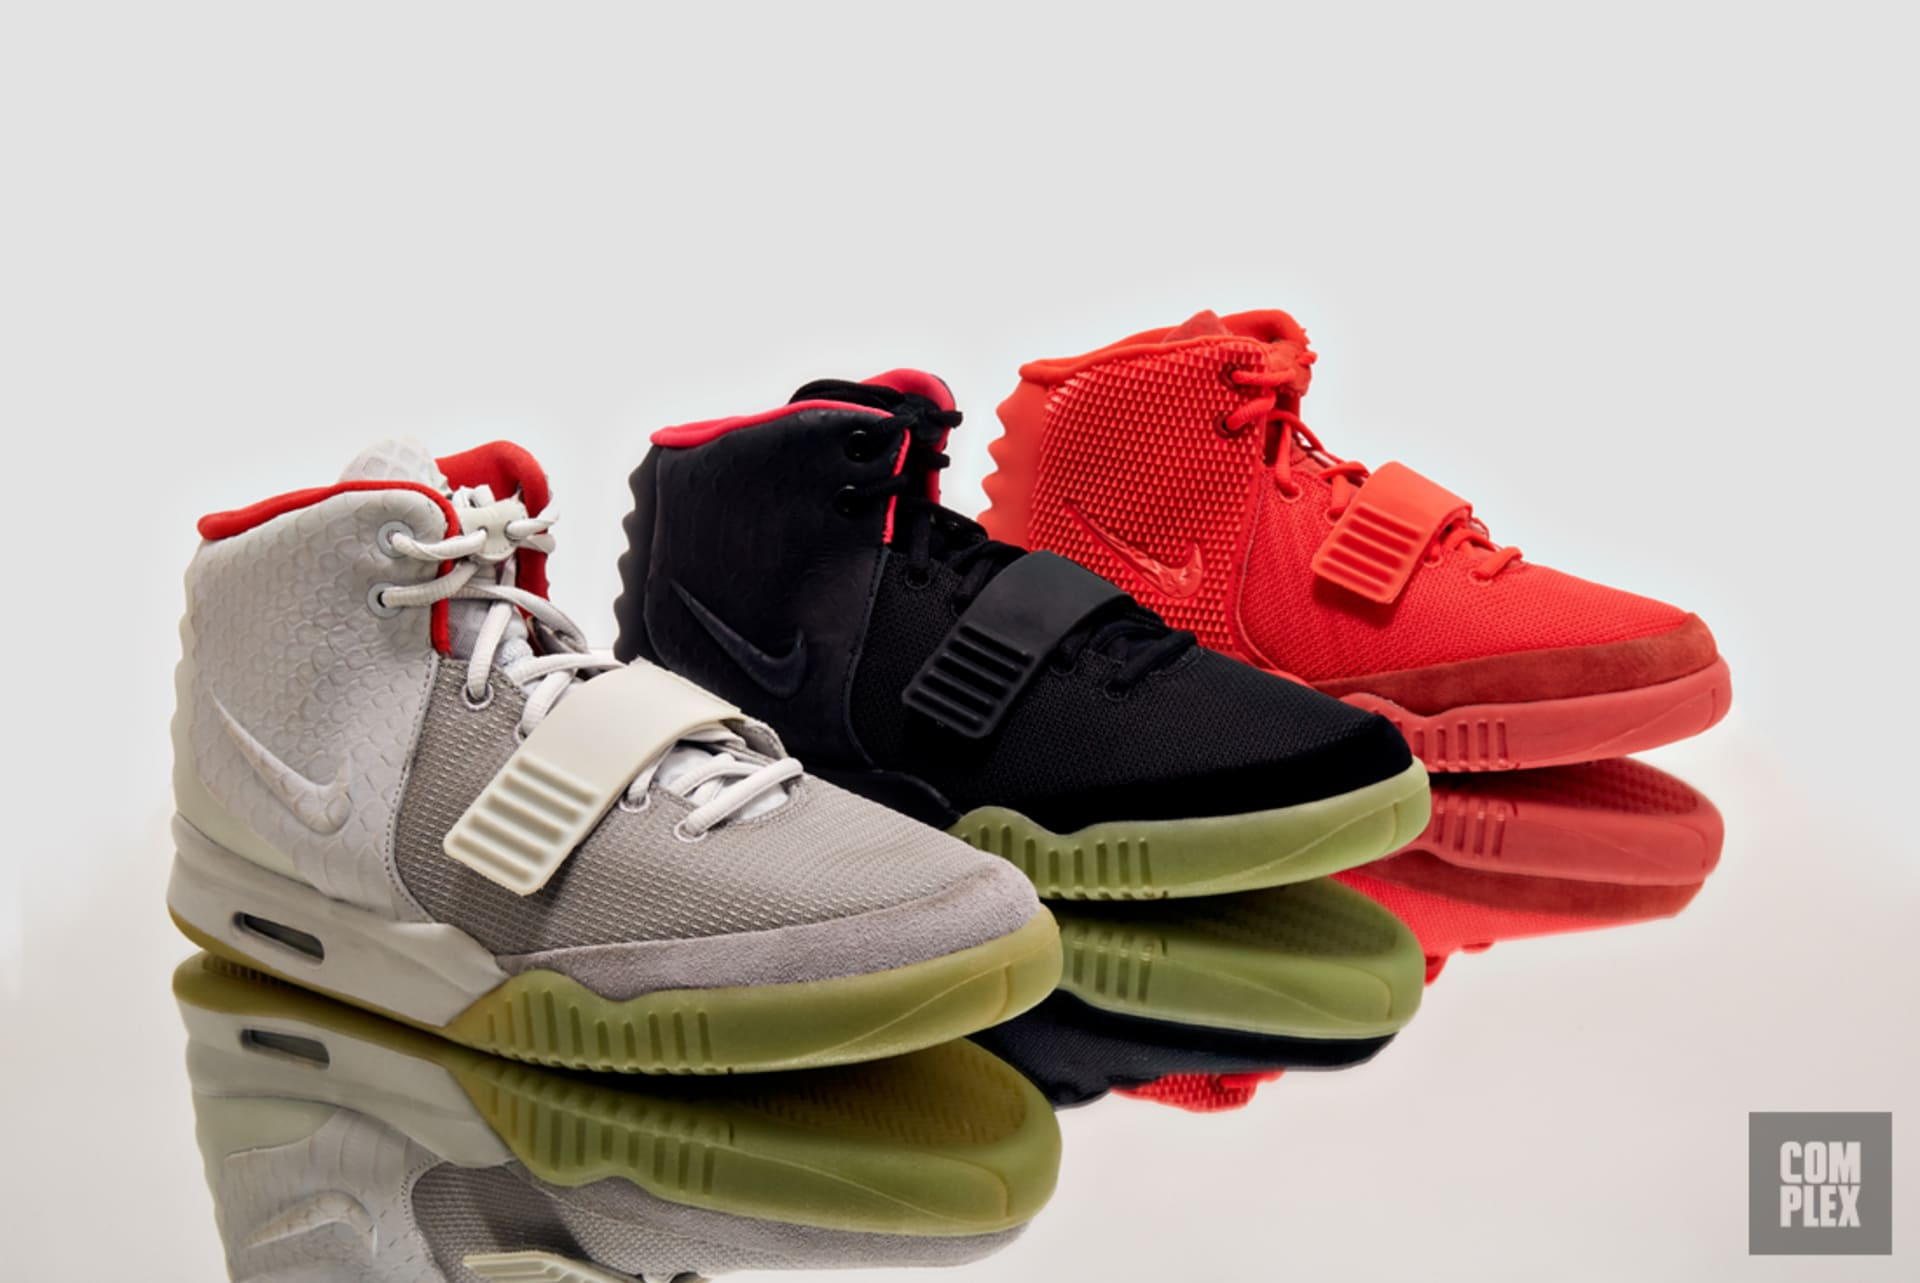 How Success Air Greatest 2 Led To The Yeezy Kanye West's kZPiOXuT